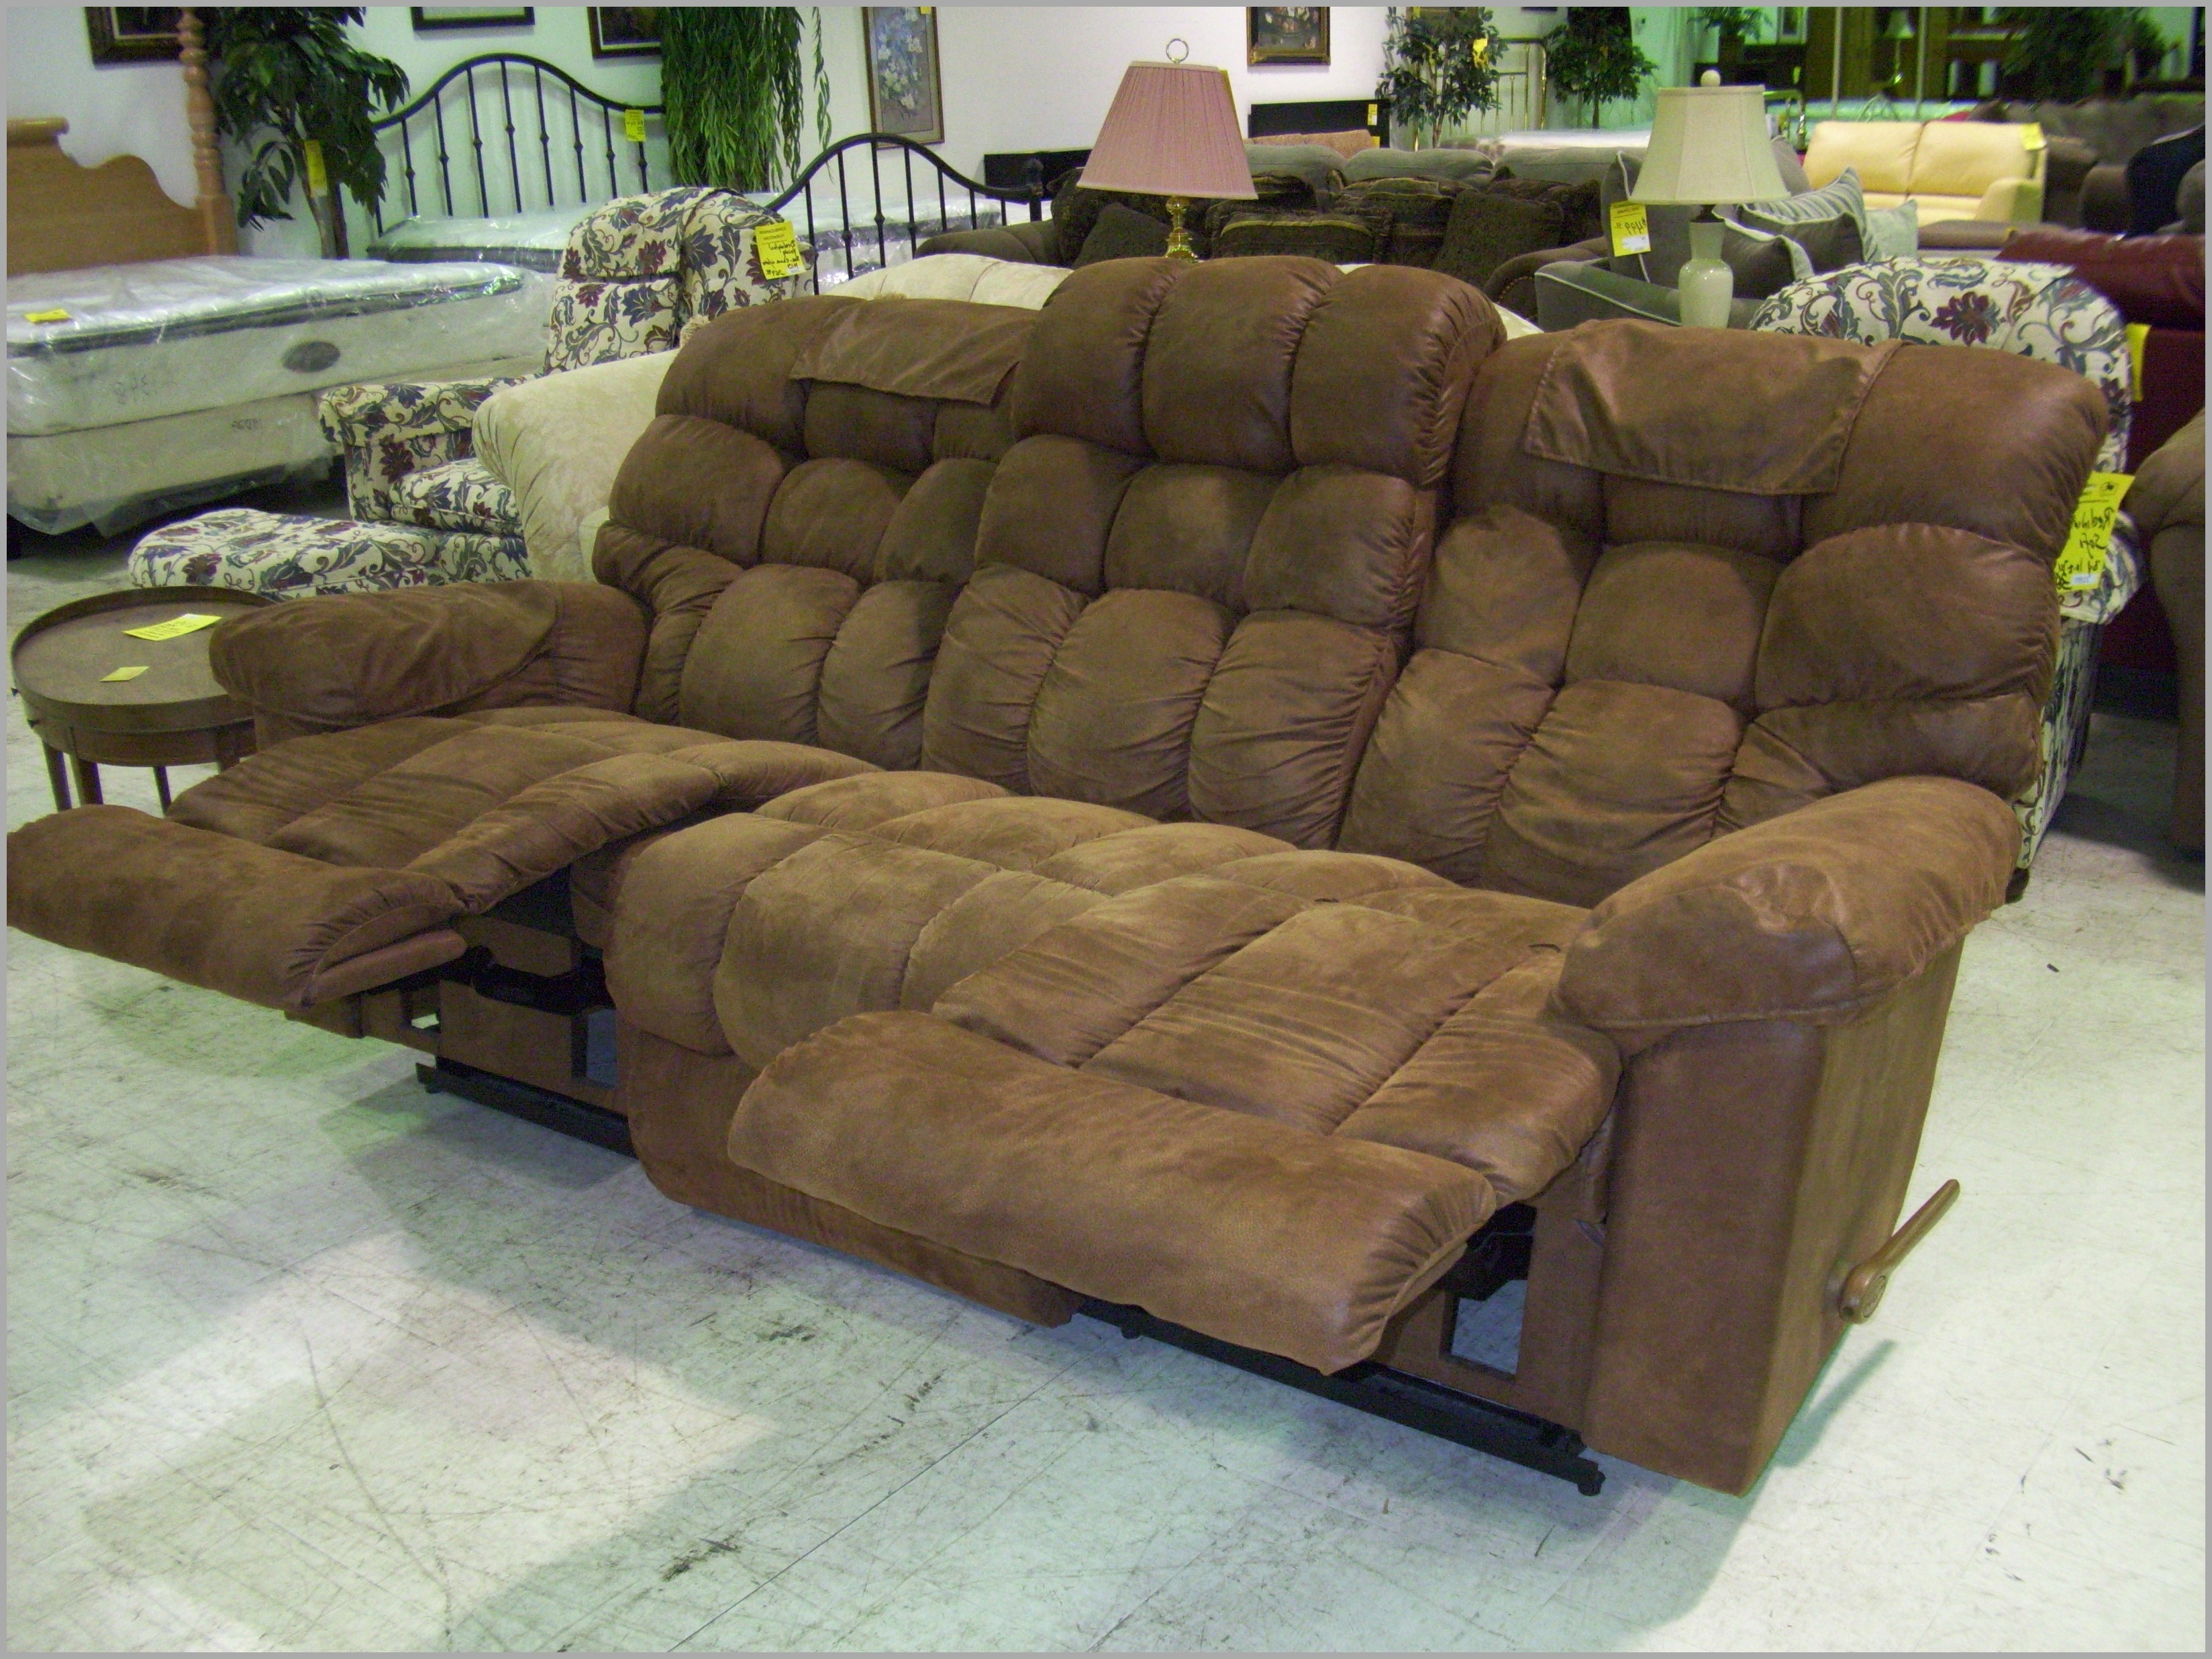 Sofas : Recliners Near Me Sears Power Lift Chairs Sears Sectionals With 2018 Sectional Sofas At Sears (View 11 of 15)